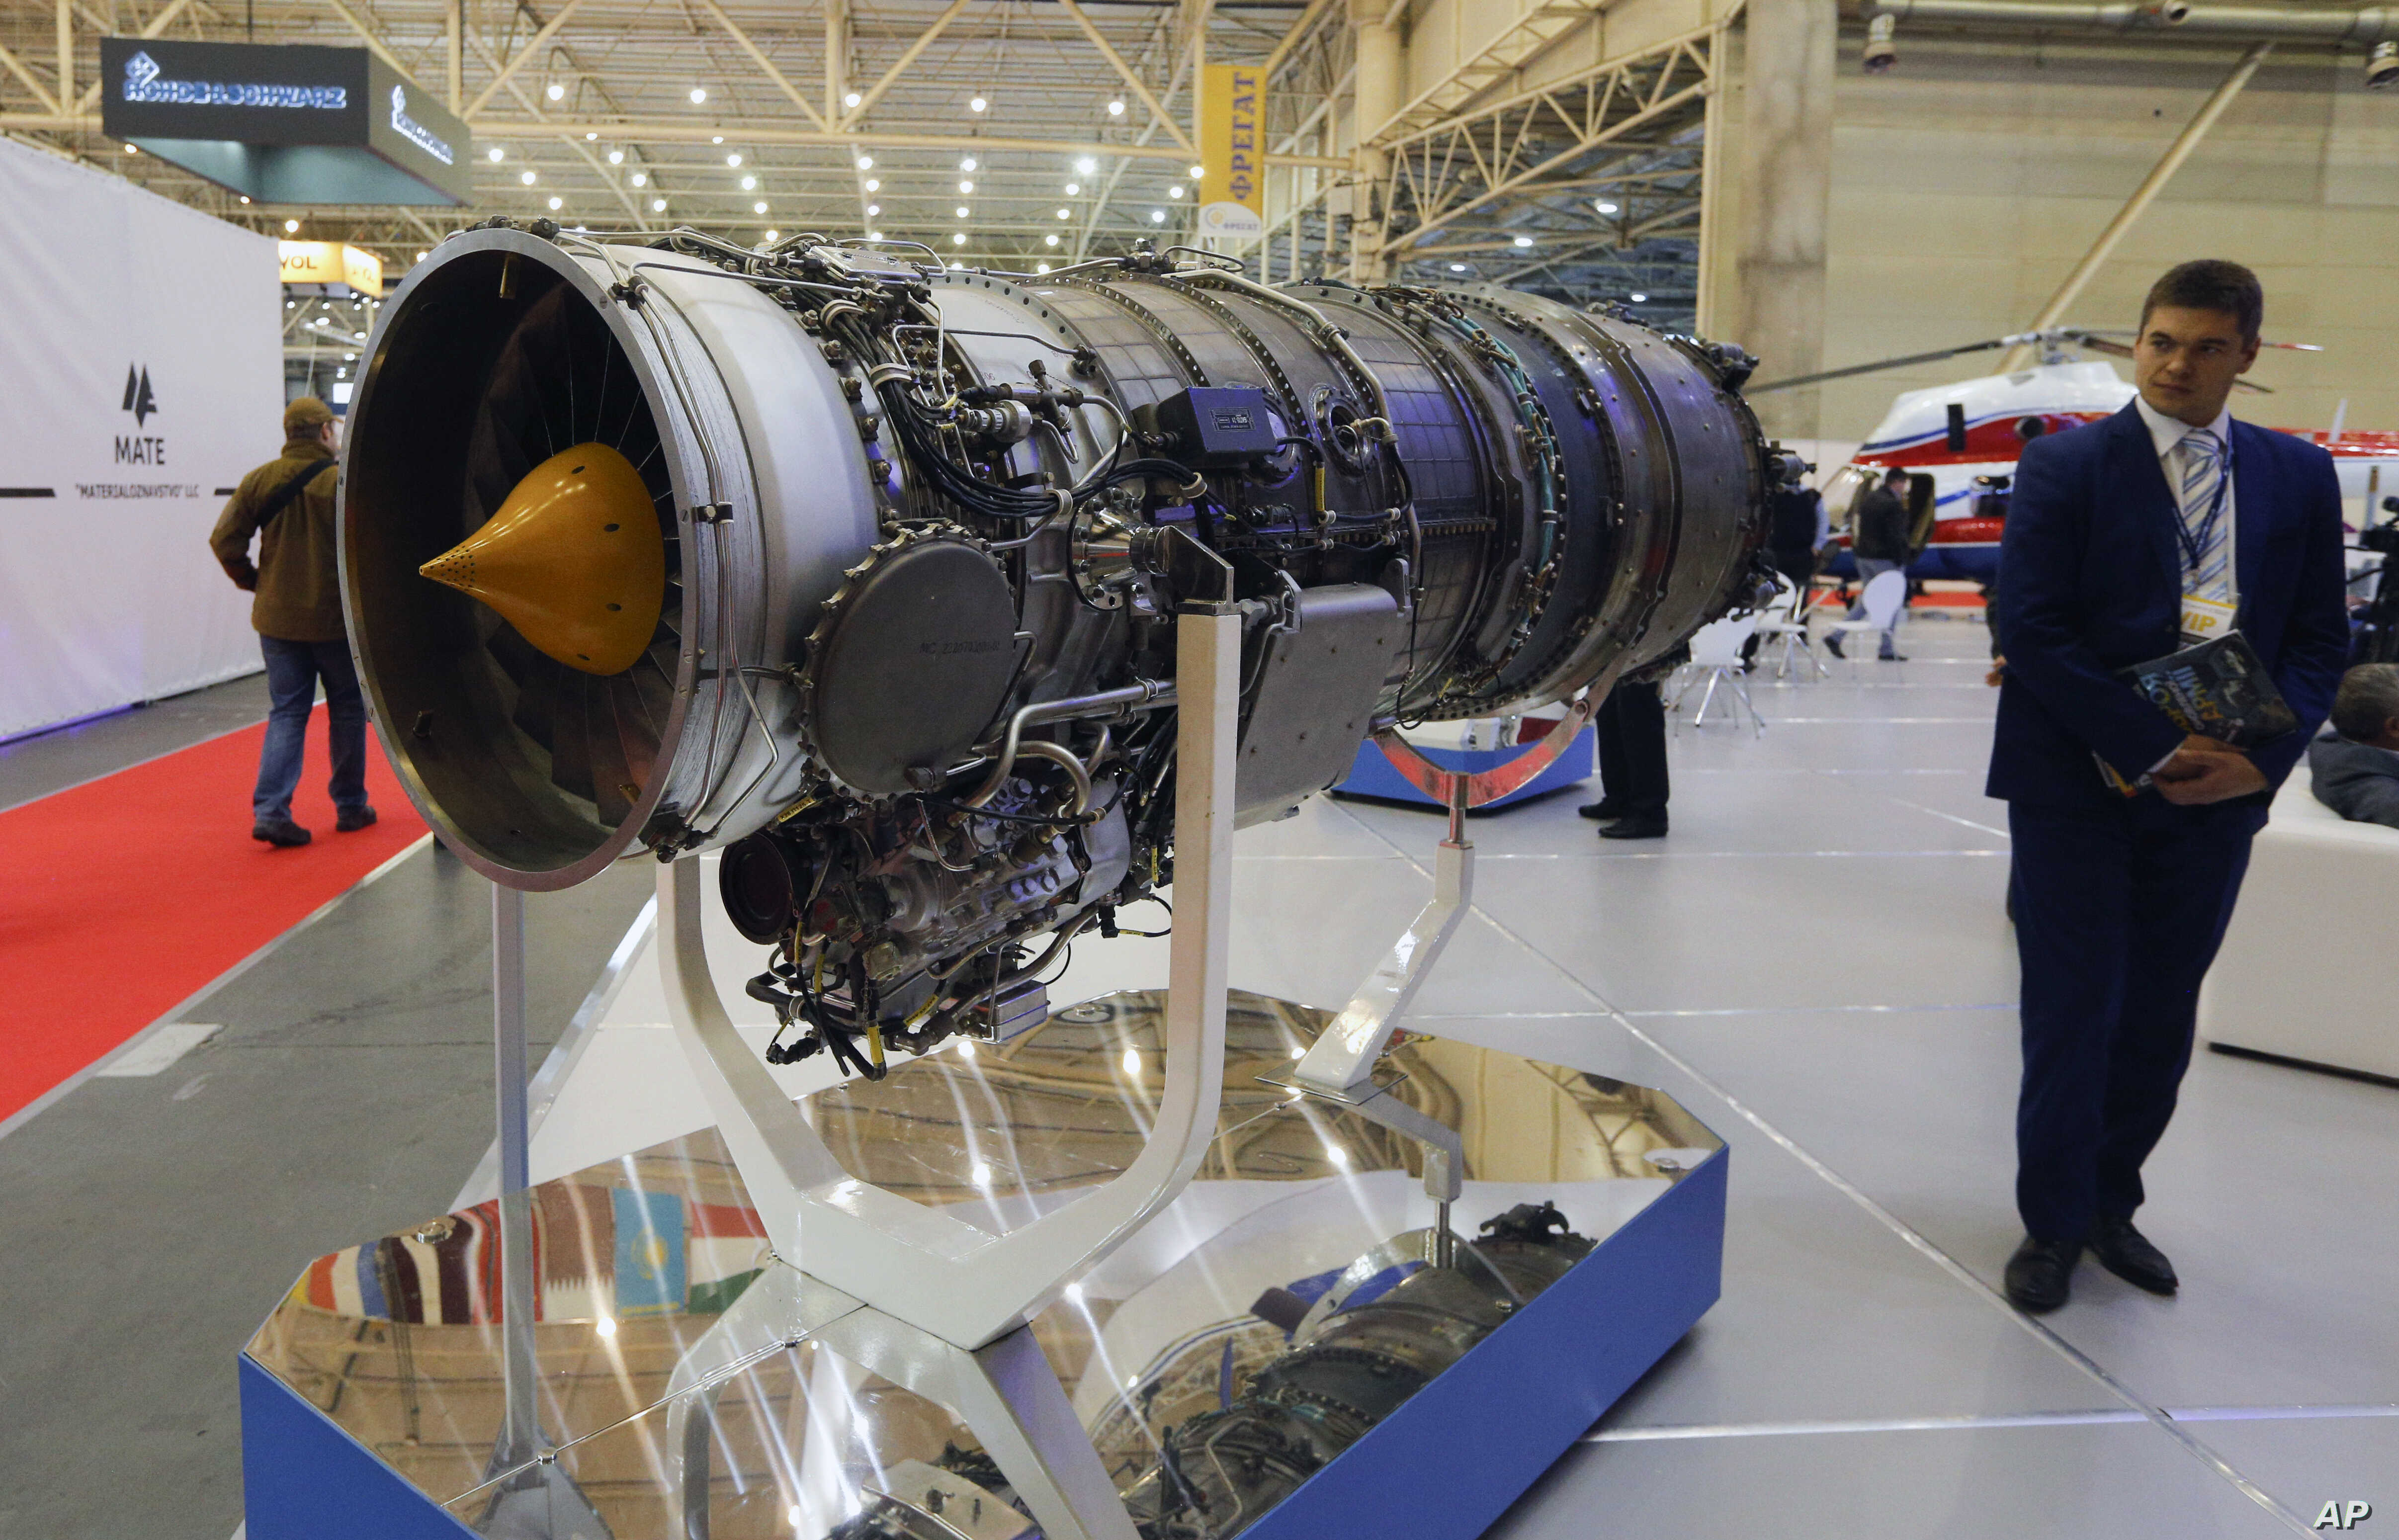 FILE - A visitor looks at a turbofan AI-322F engine for combat trainers and light combat aircraft made by Ukraine's Motor Sich manufacturer at an international weapons exhibition in Kyiv, Ukraine, Oct. 9, 2018.